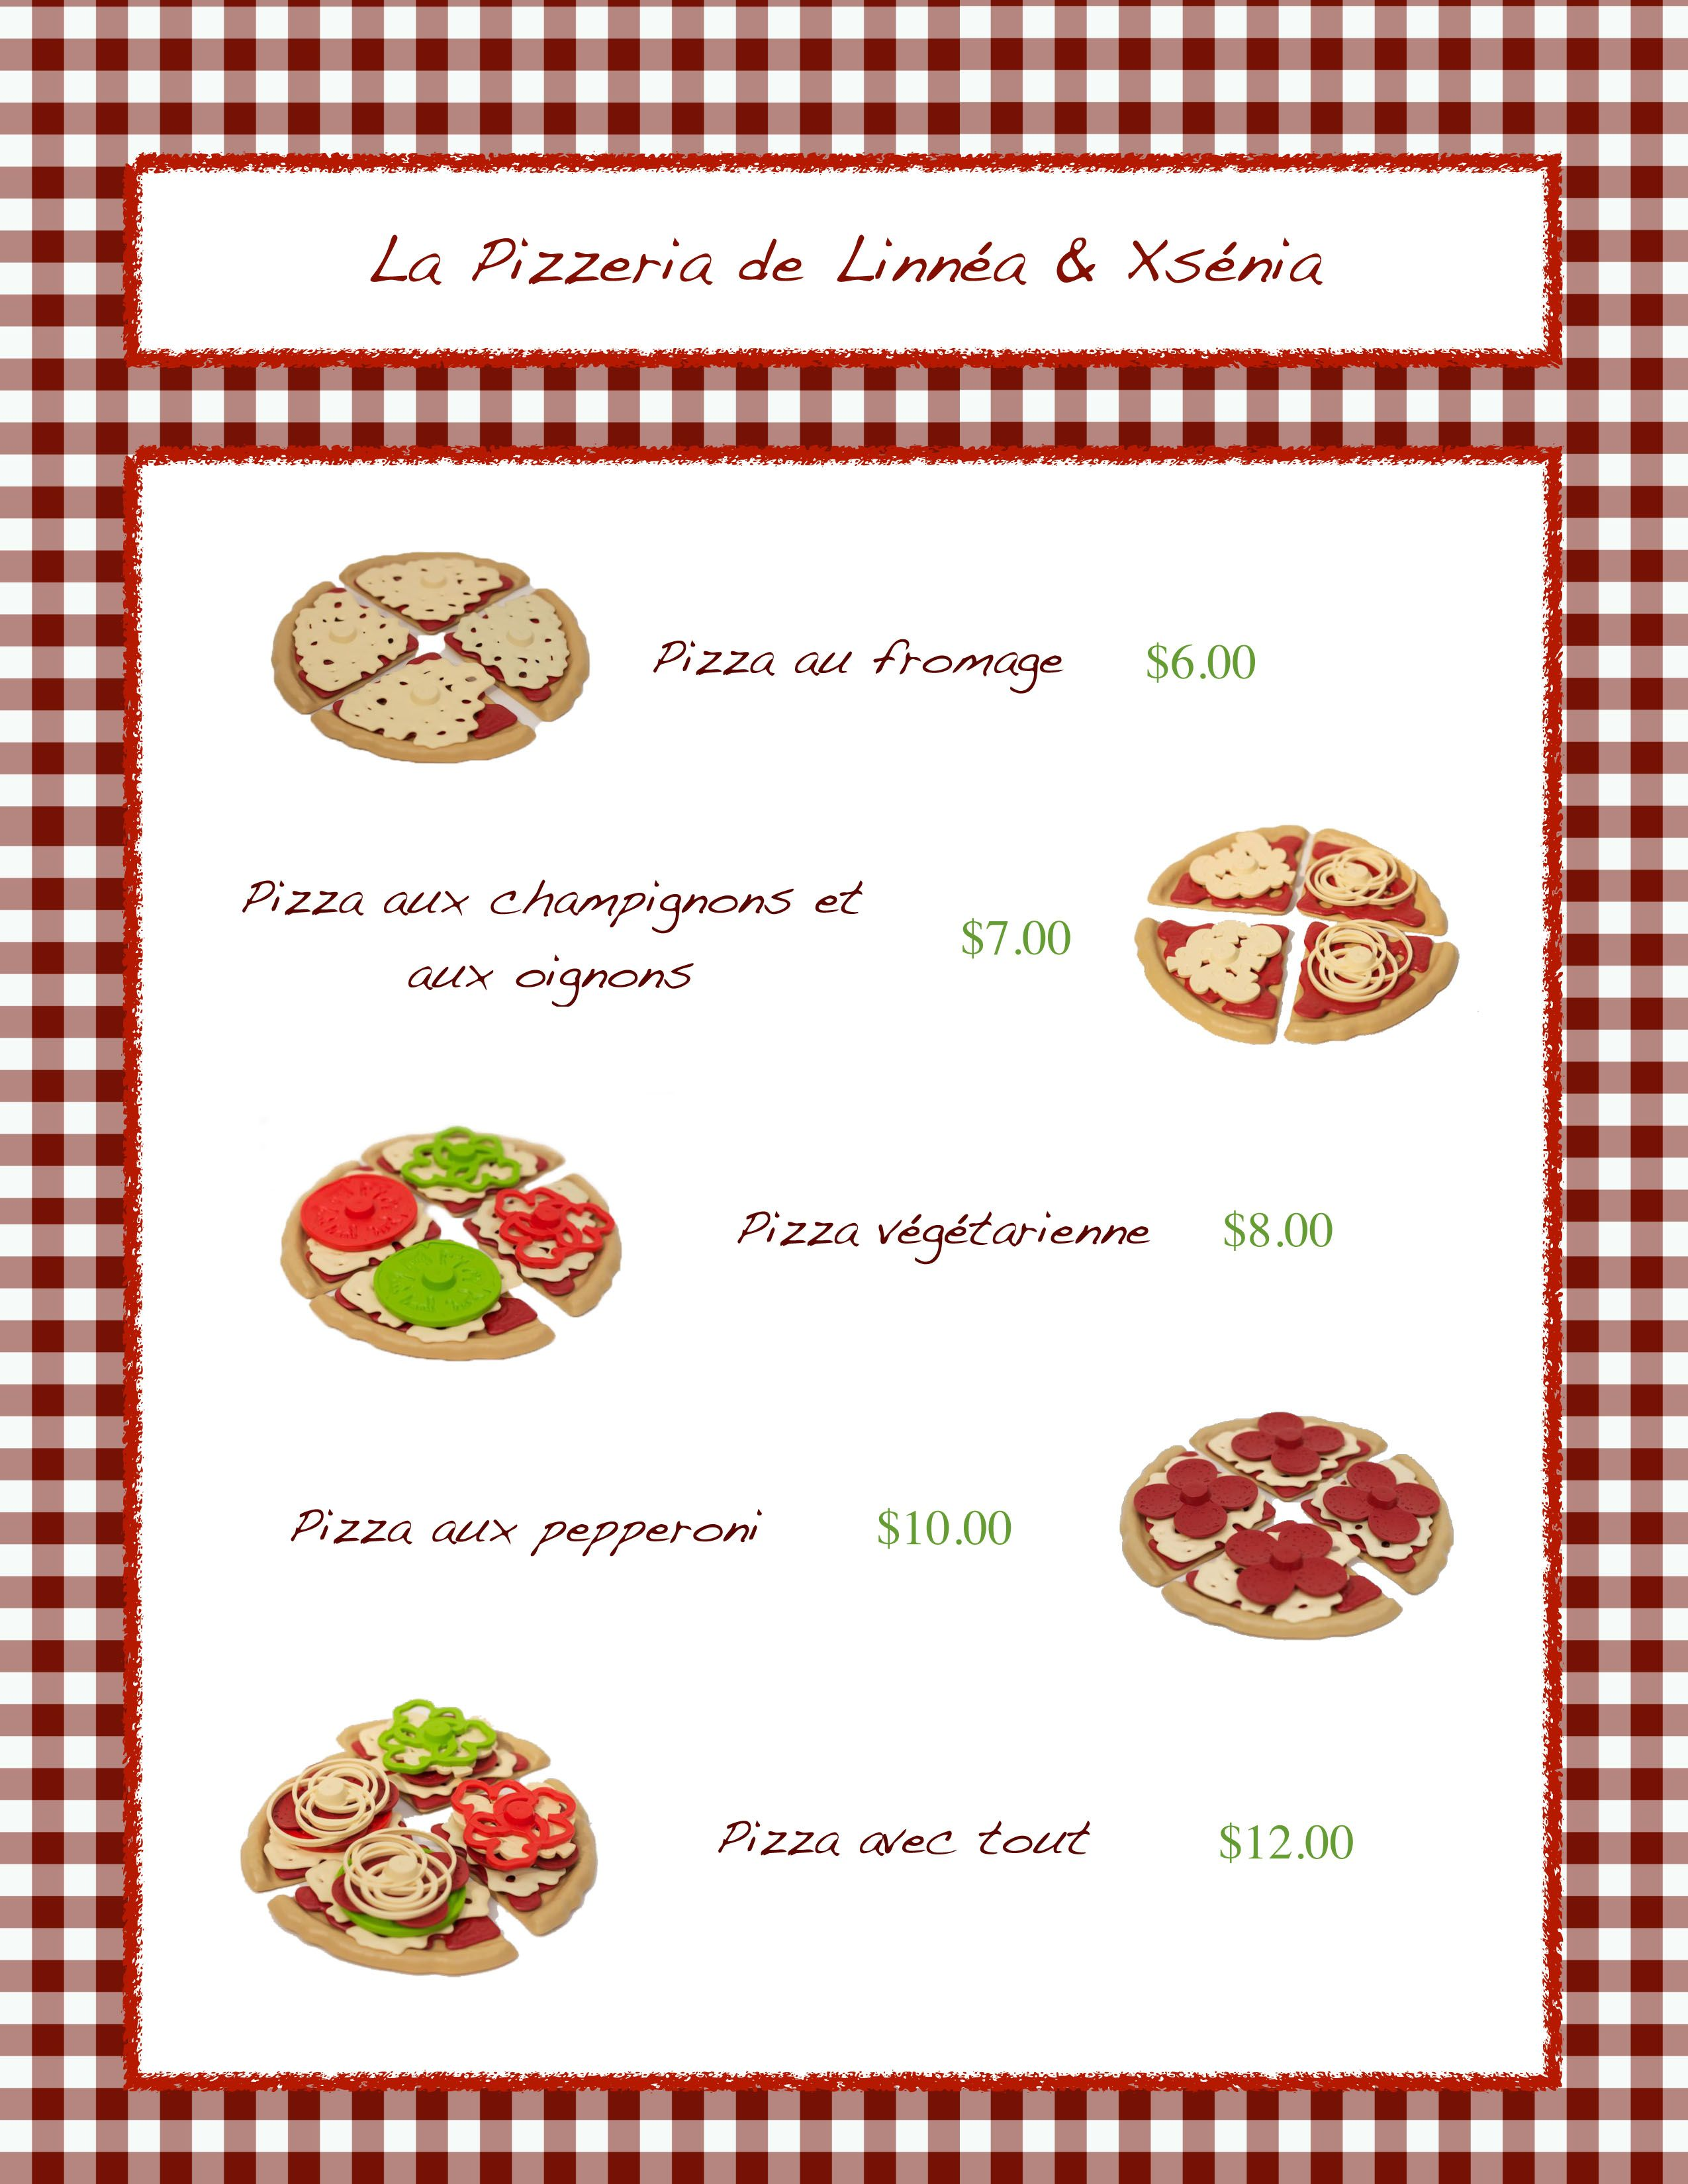 menu de pizzeria en fran ais the fle classroom pinterest fle table cuisine et mat riel. Black Bedroom Furniture Sets. Home Design Ideas